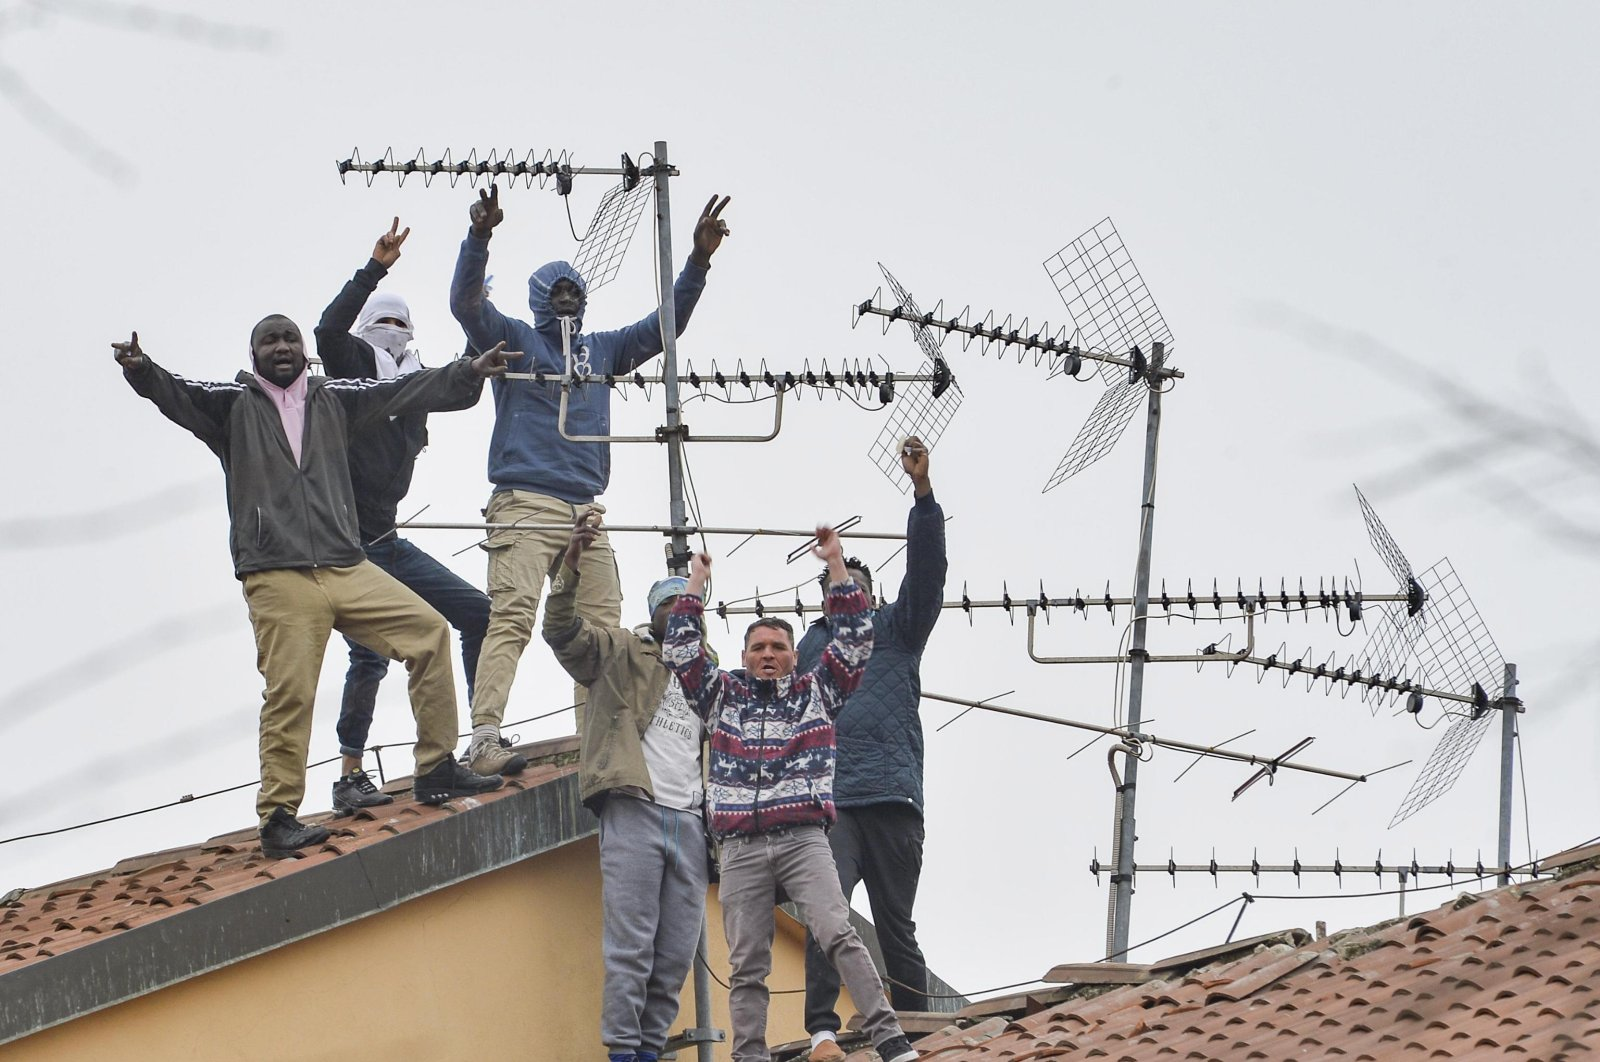 Detainees protest on the roofs of the San Vittore Prison in Milan, northern Italy, March 9, 2020. (EPA Photo)